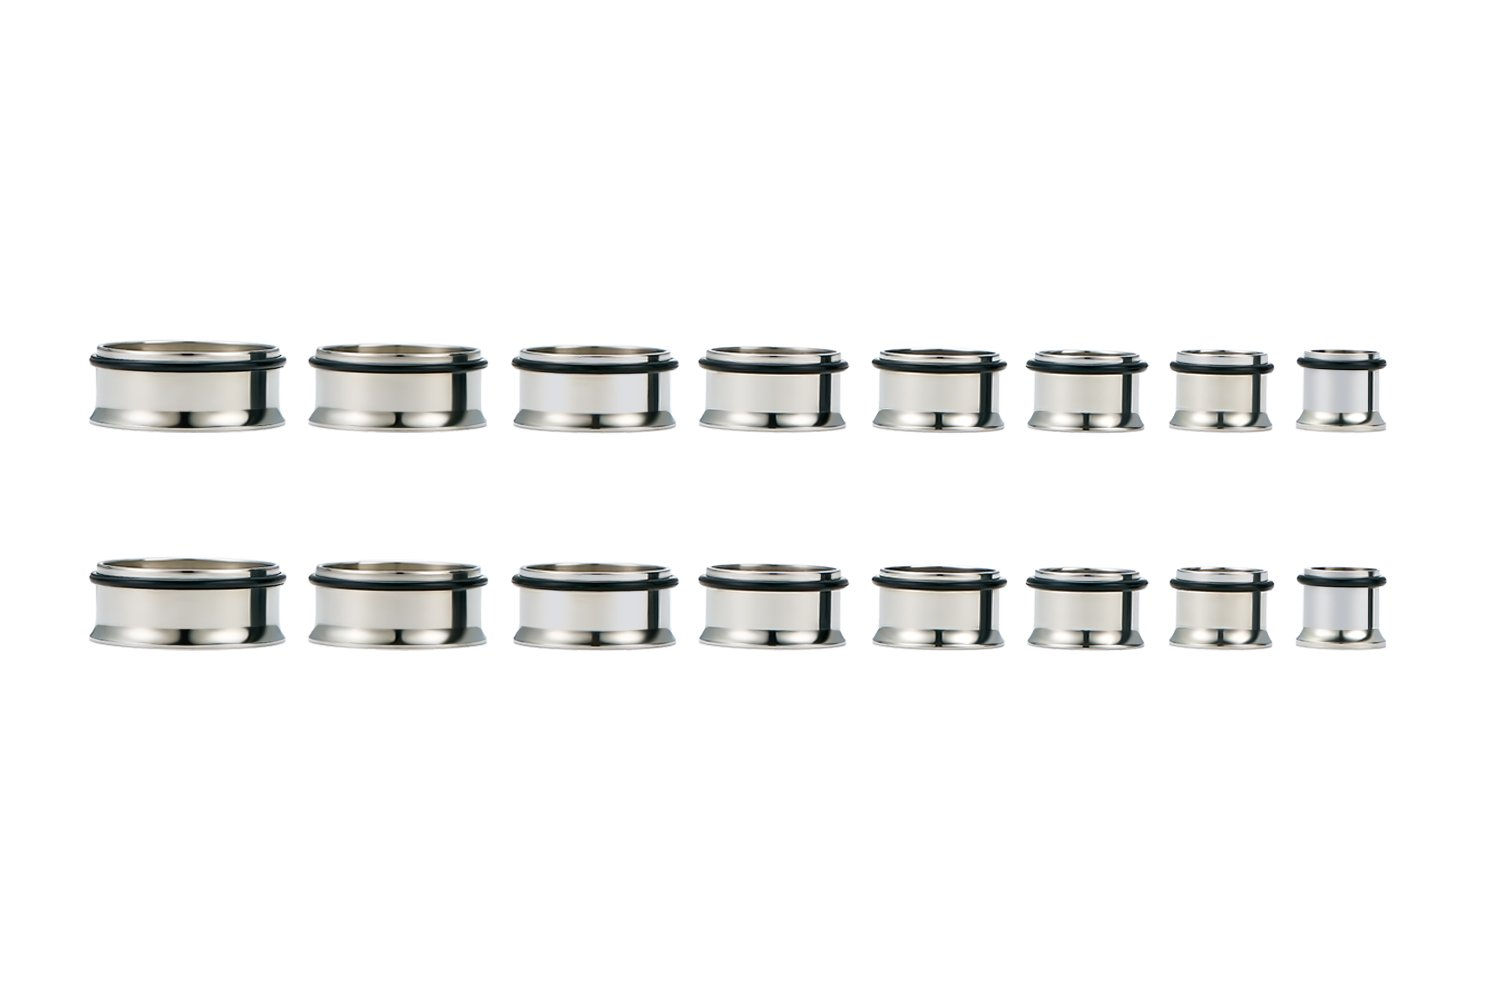 vcmart Gauges for Ear Stretching Tunnel Kit 316L Stainless Steel Flesh Tunnels Plugs Gauge Expanders 8PRS 2G-13/16 Silver